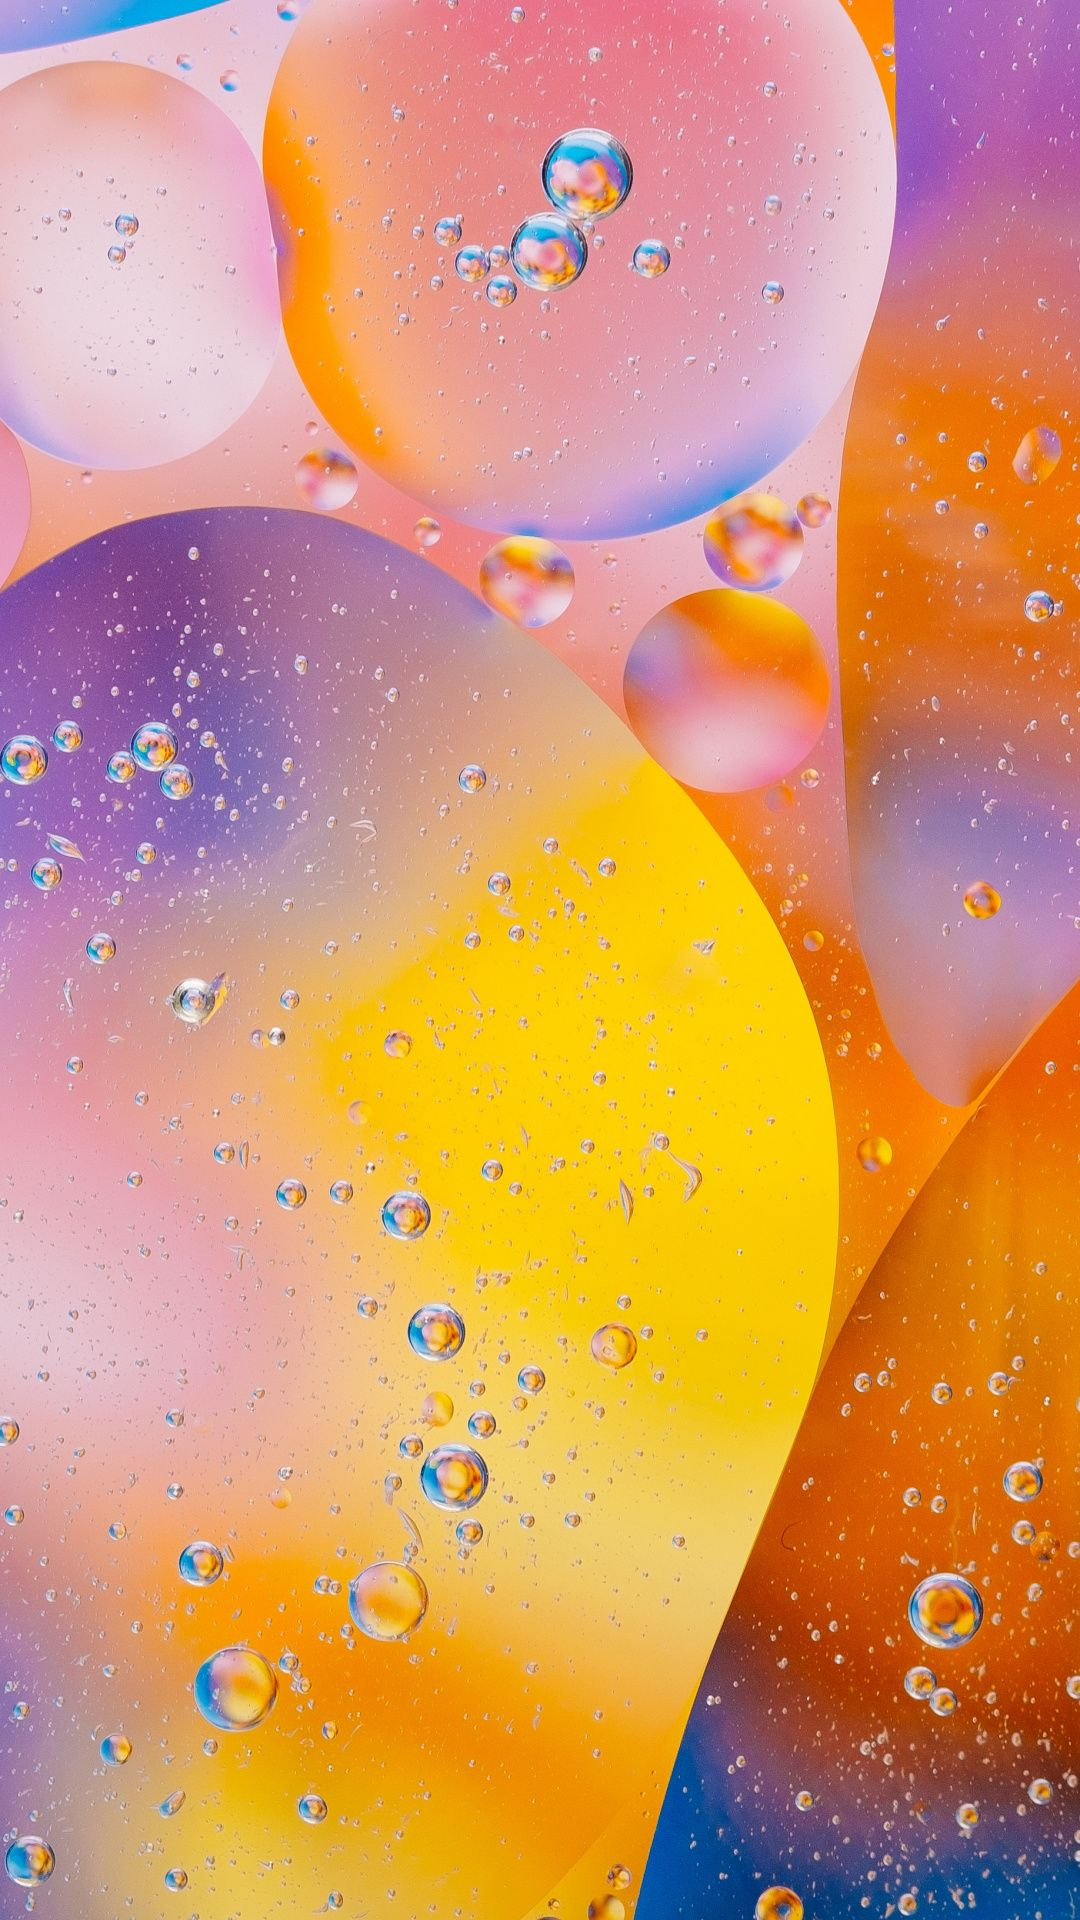 Downaload Edge Gradient Bubble Colorful Wallpaper For Screen 1080x1920 Samsung Galaxy S4 S5 Note Sony Xperia Htc Wallpaper Colorful Wallpaper Wallpaper